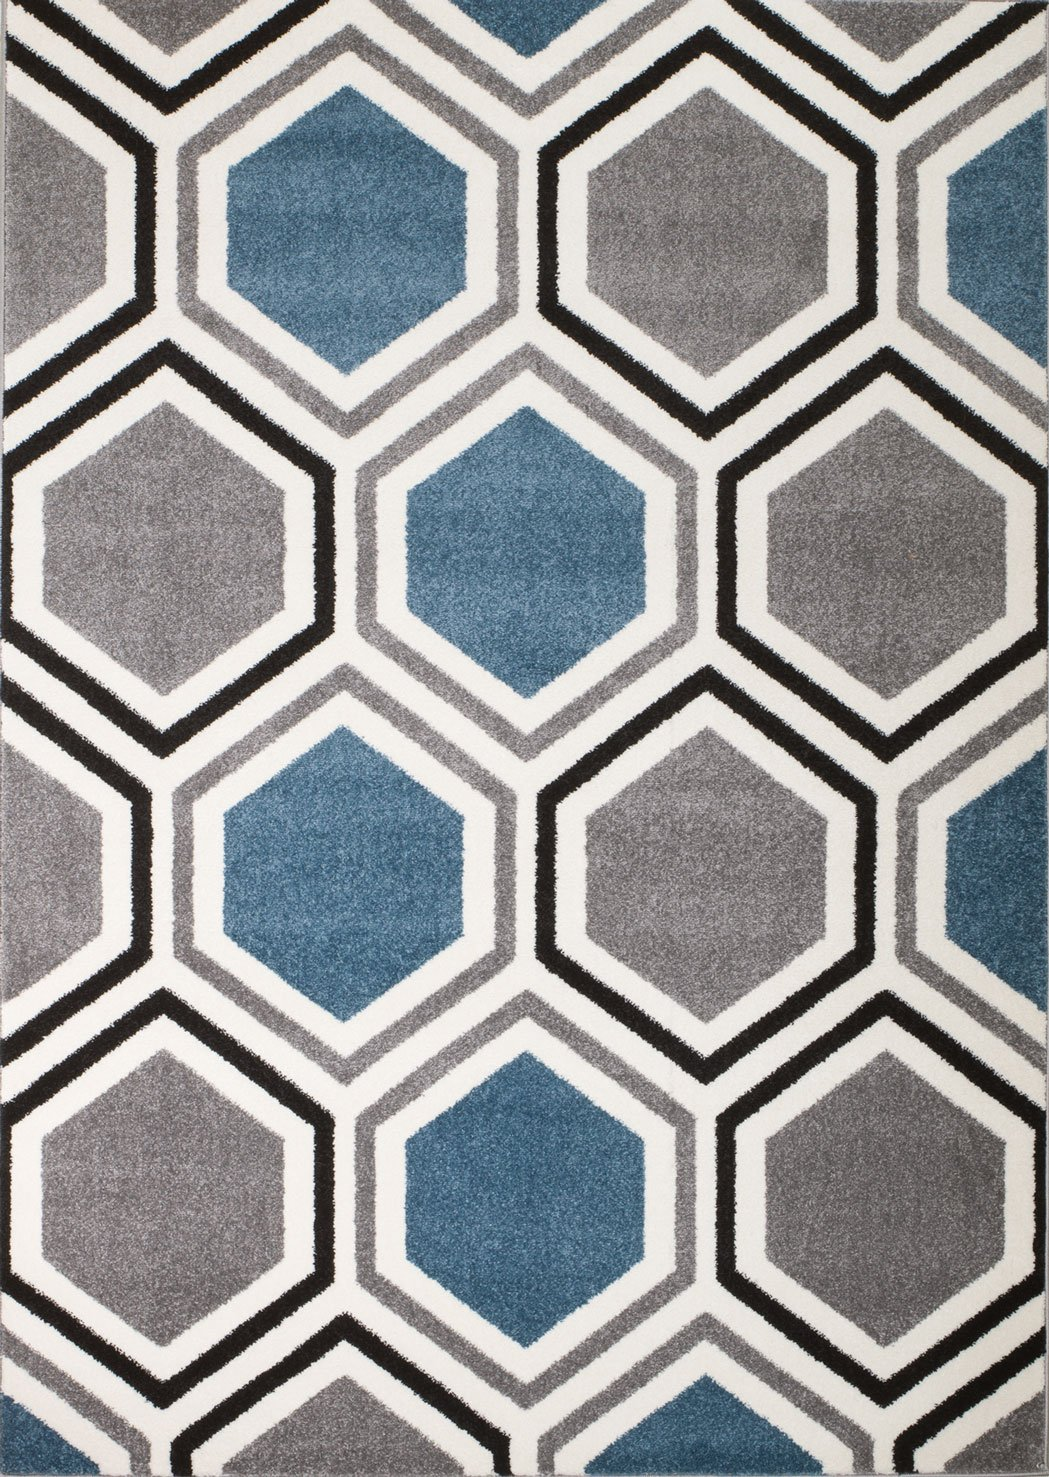 Rio VY-GKN4-W1U9 Summit 313 Grey Blue White Area Rug Modern Geometric Many Sizes Available , DOOR MAT 22 inch x 35 inch